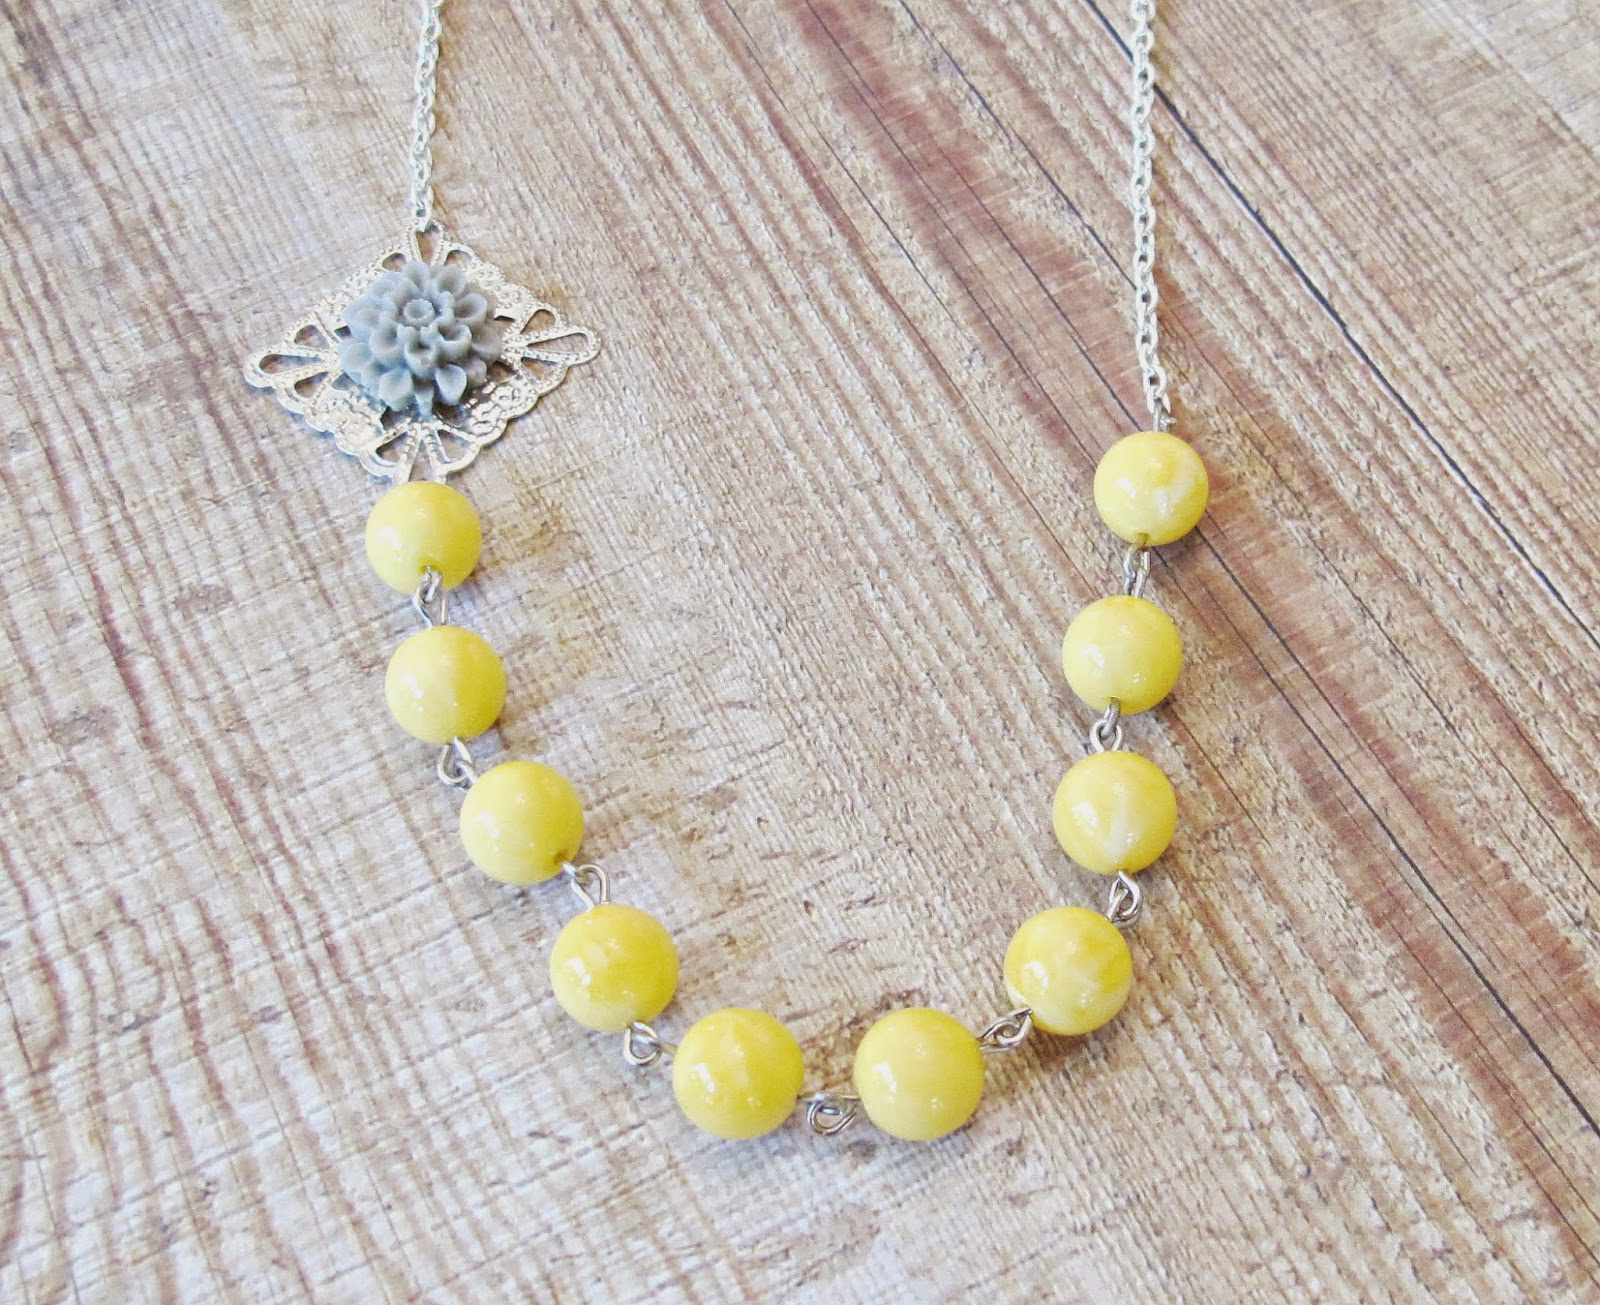 image quendi necklace two cheeky monkeys asymmetrical yellow grey gray silver jewellery